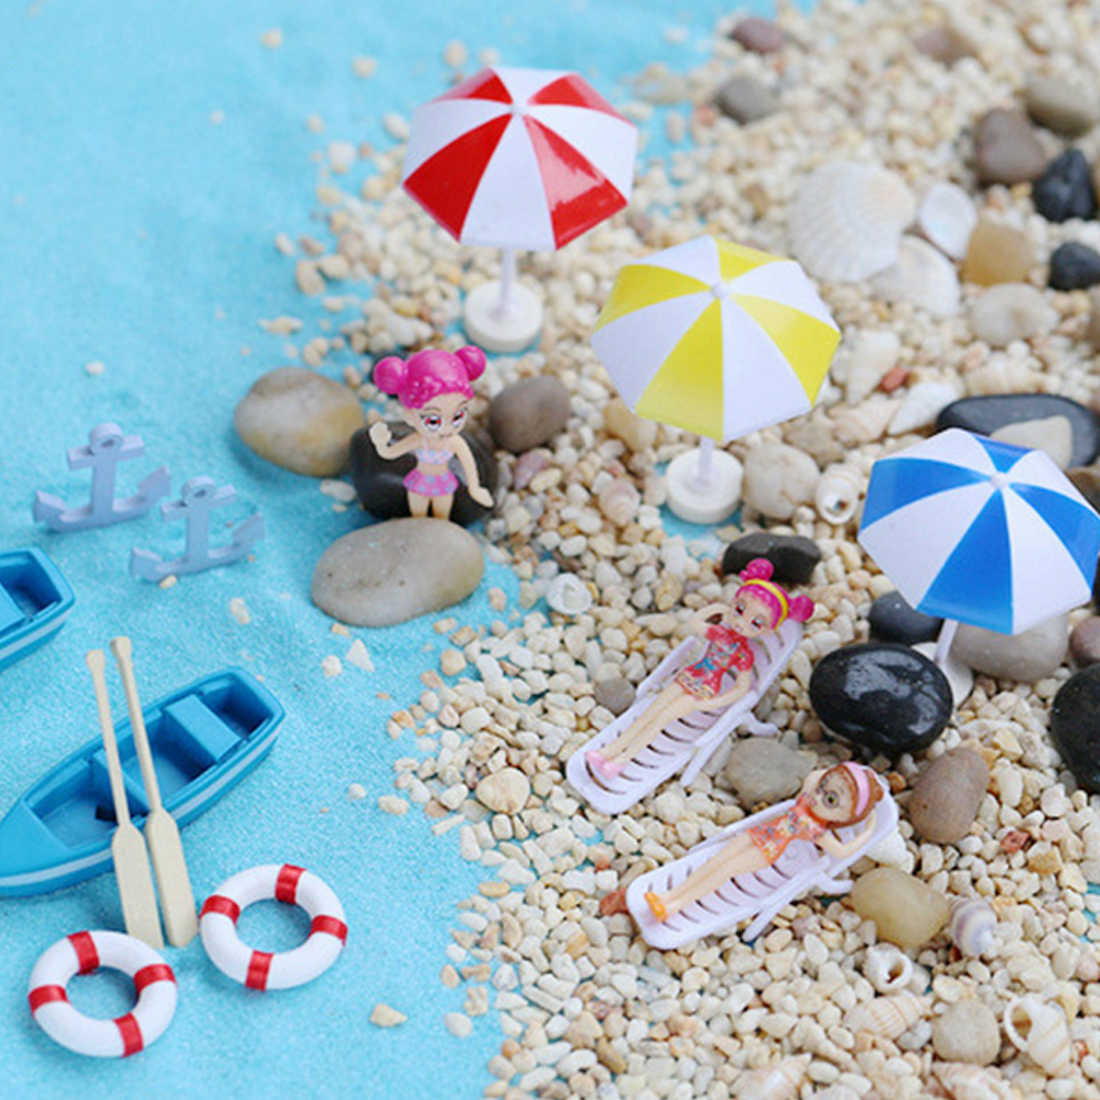 New Mini Artificial Beach Chair Micro Fairy Garden Figurine Miniature/Terrarium/Doll House Decoration Ornament DIY Accessories